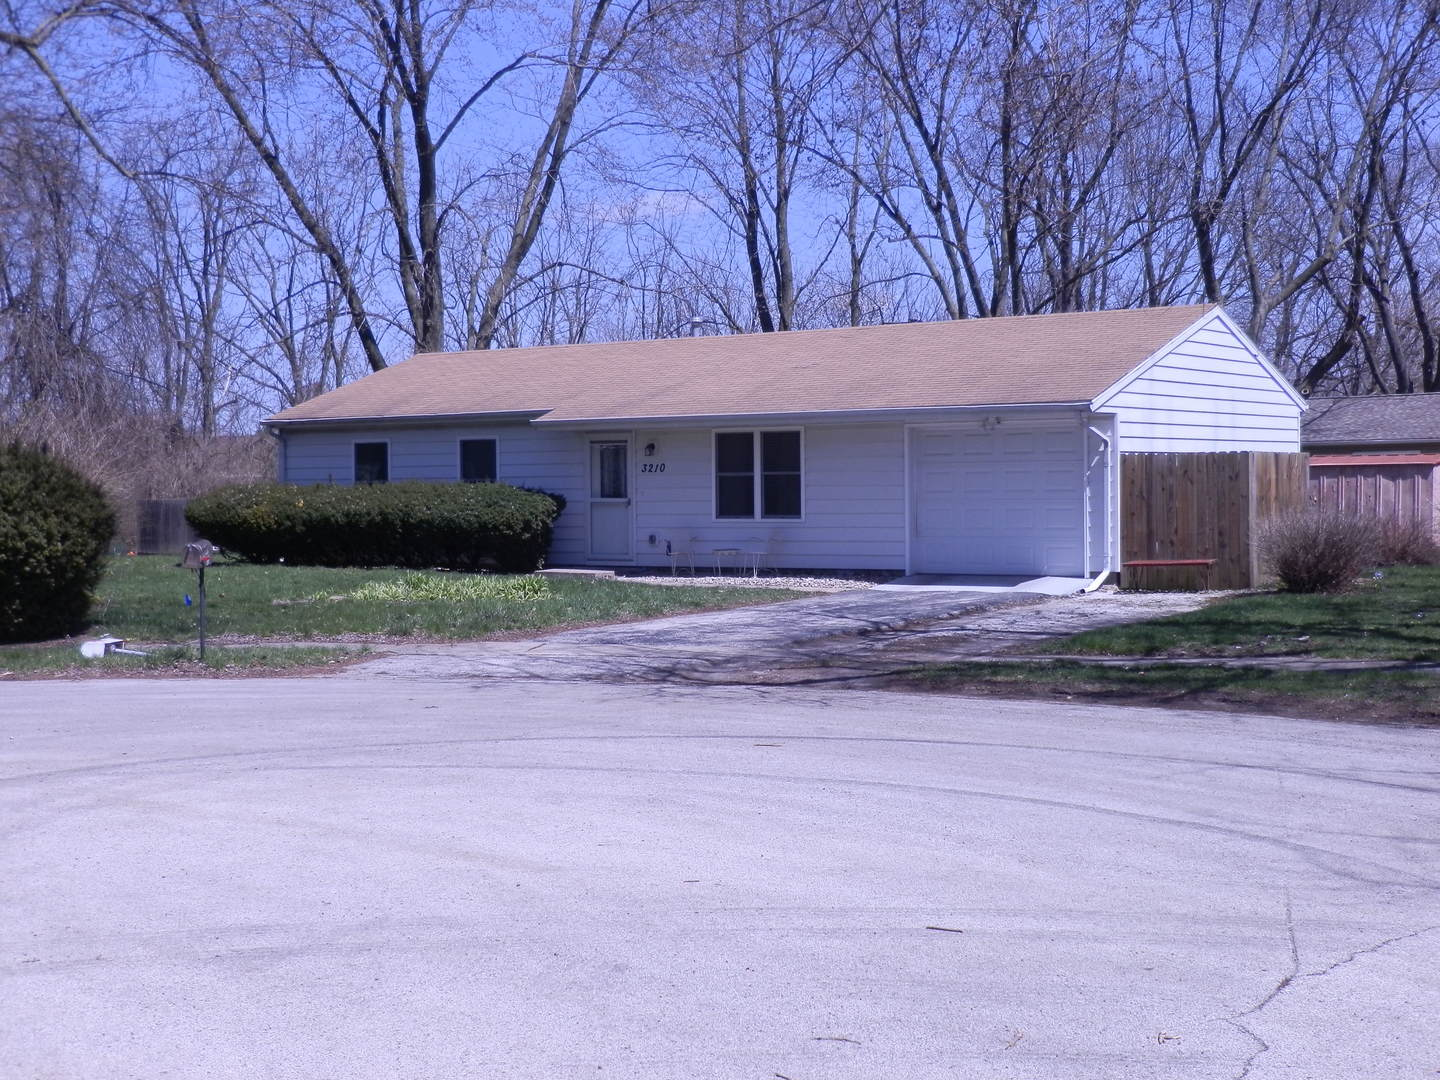 3210 Ridgewood Drive, Champaign in Champaign County, IL 61821 Home for Sale